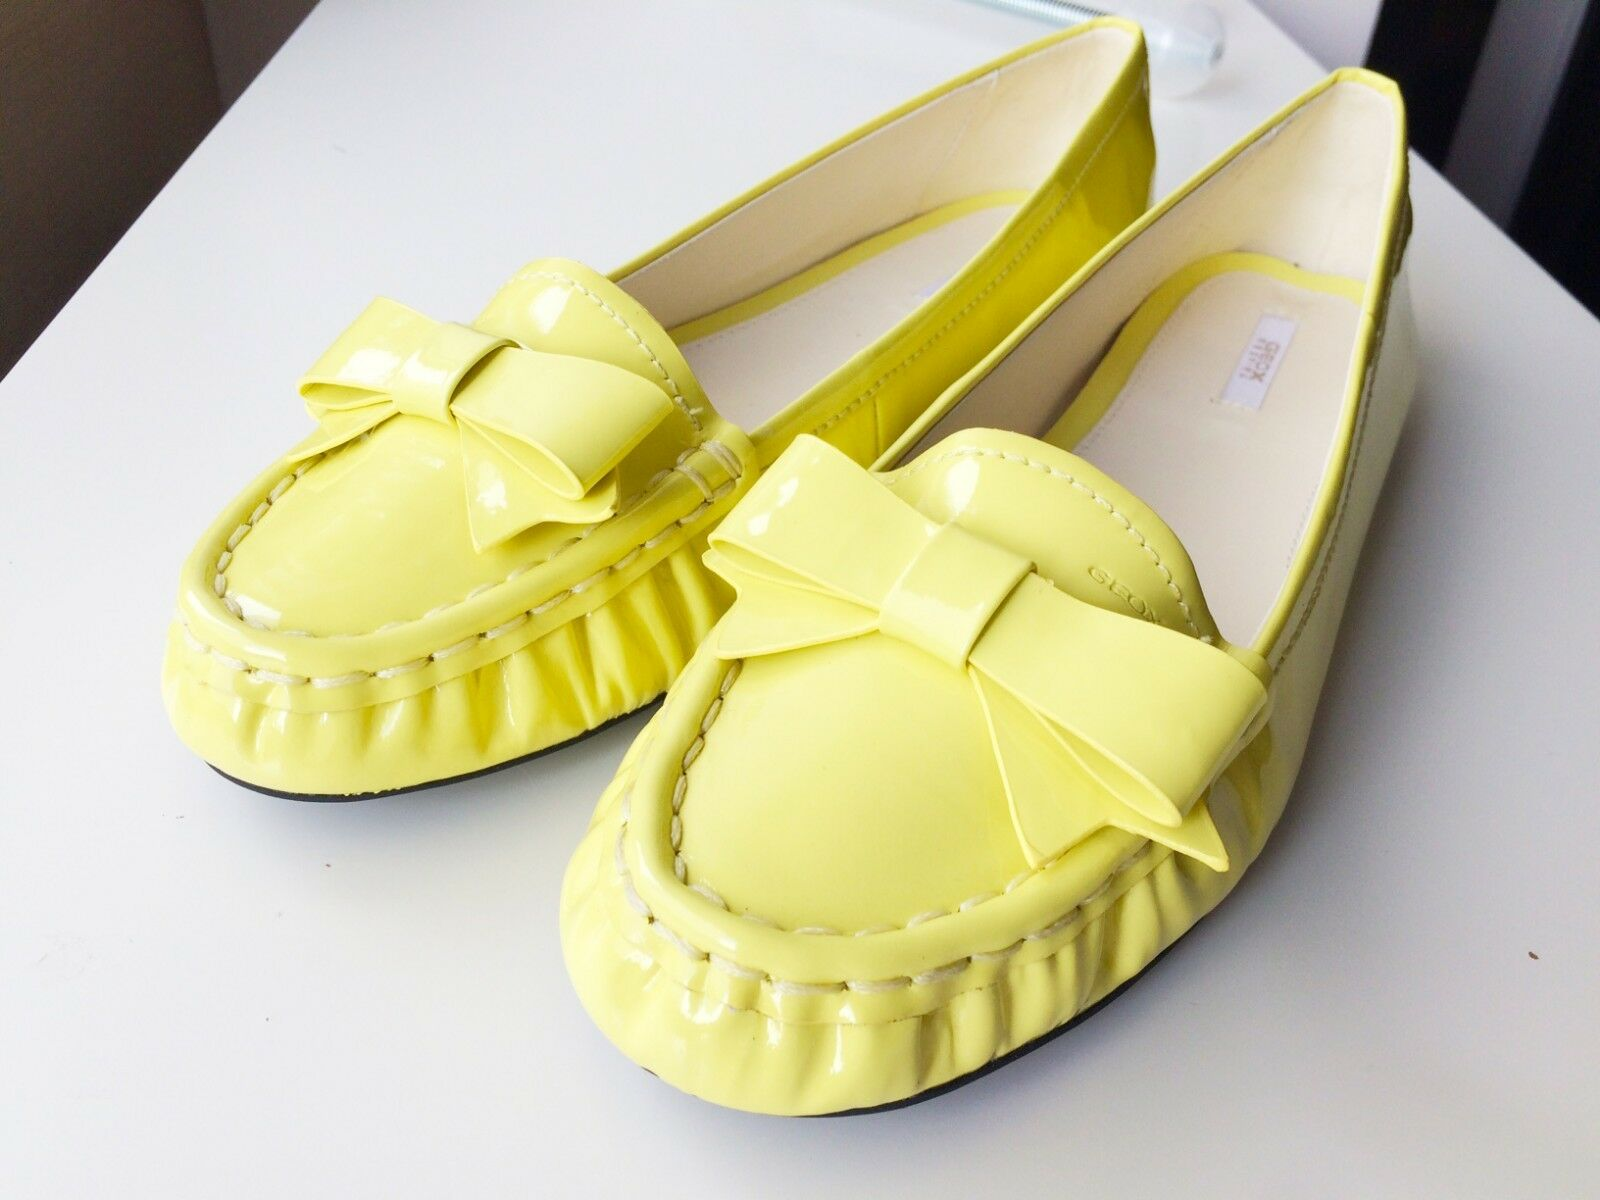 GEOX jaune woman flats LOAFERS real real real patent leather, EU 39.5, NEW, never worn be8ef2